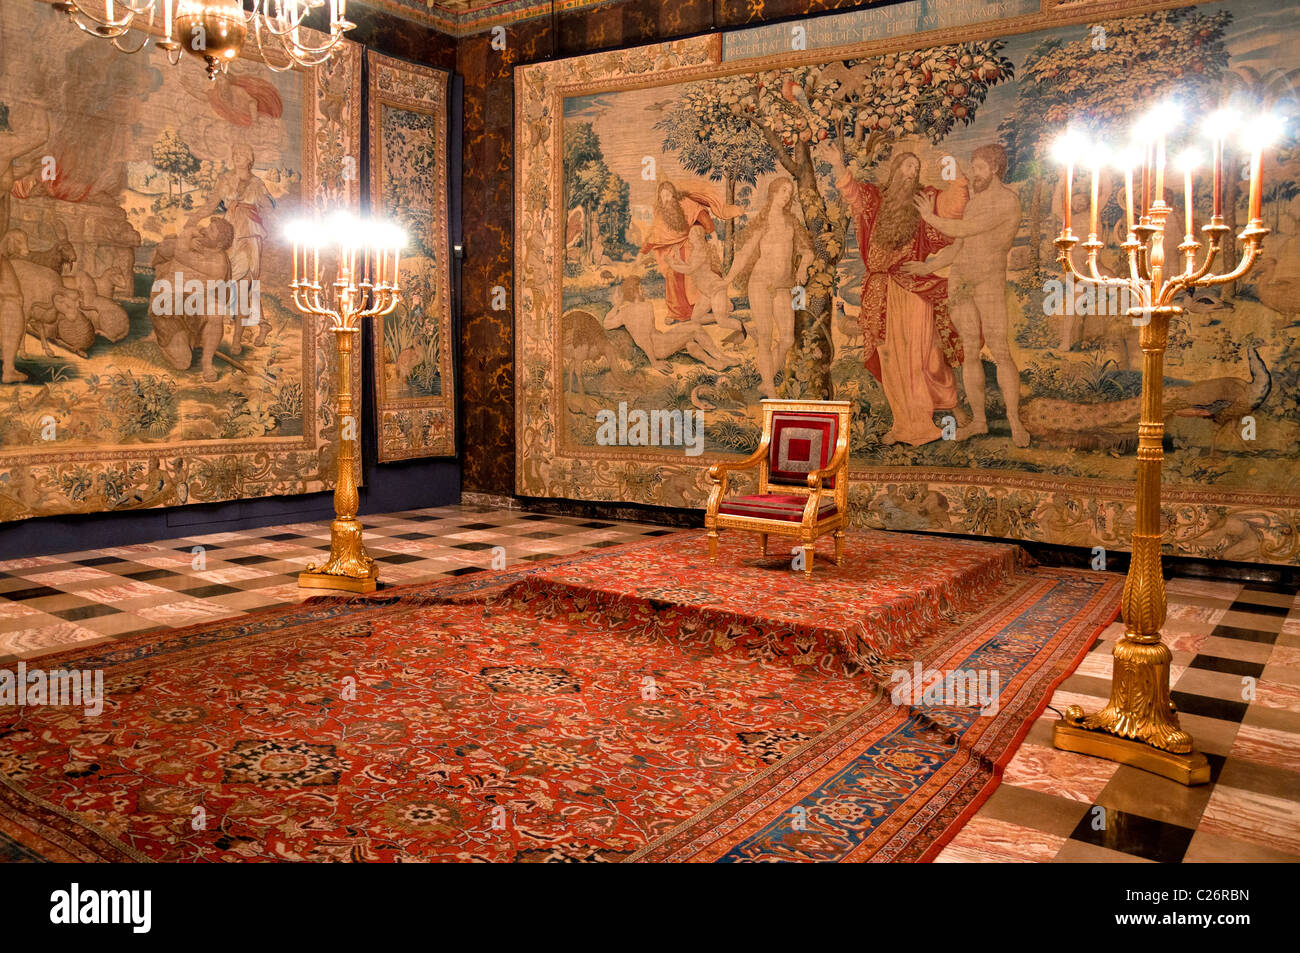 wawel castle interior stock photos & wawel castle interior stock